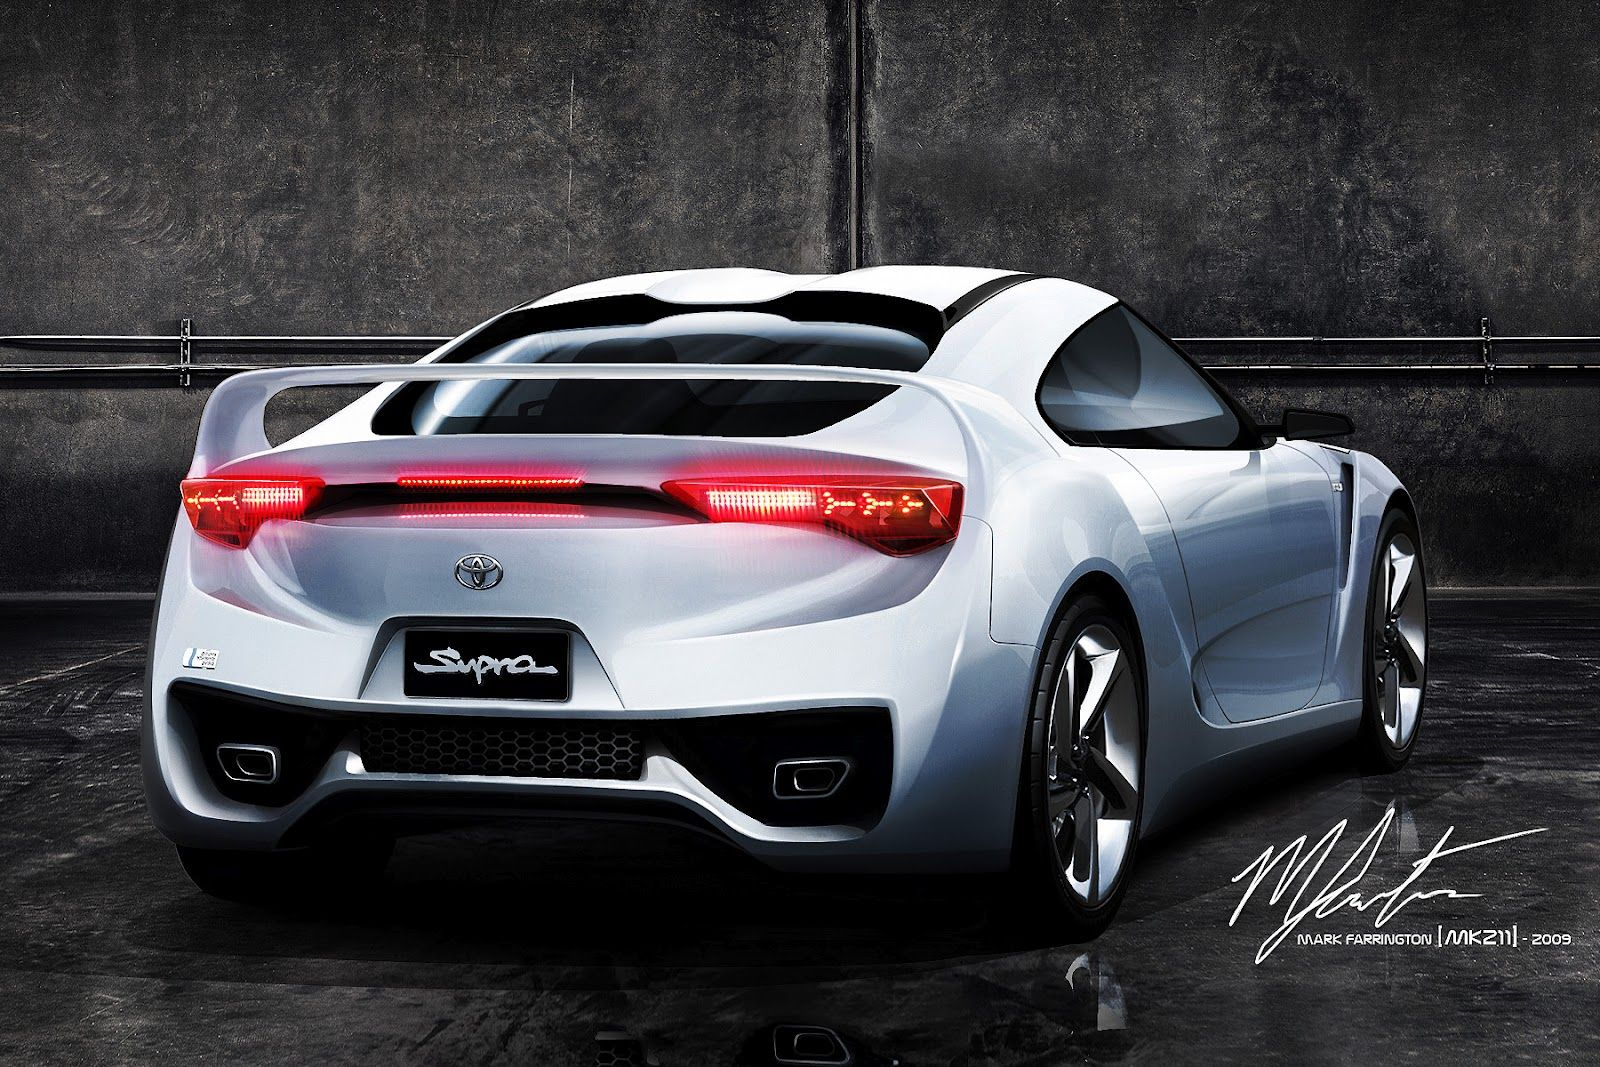 The Rear View To Complement The First View I Did Of This Concept. (Rear  View Based On Toyota FT HS Concept) Base : [link] Toyota Supra 2011 Concept